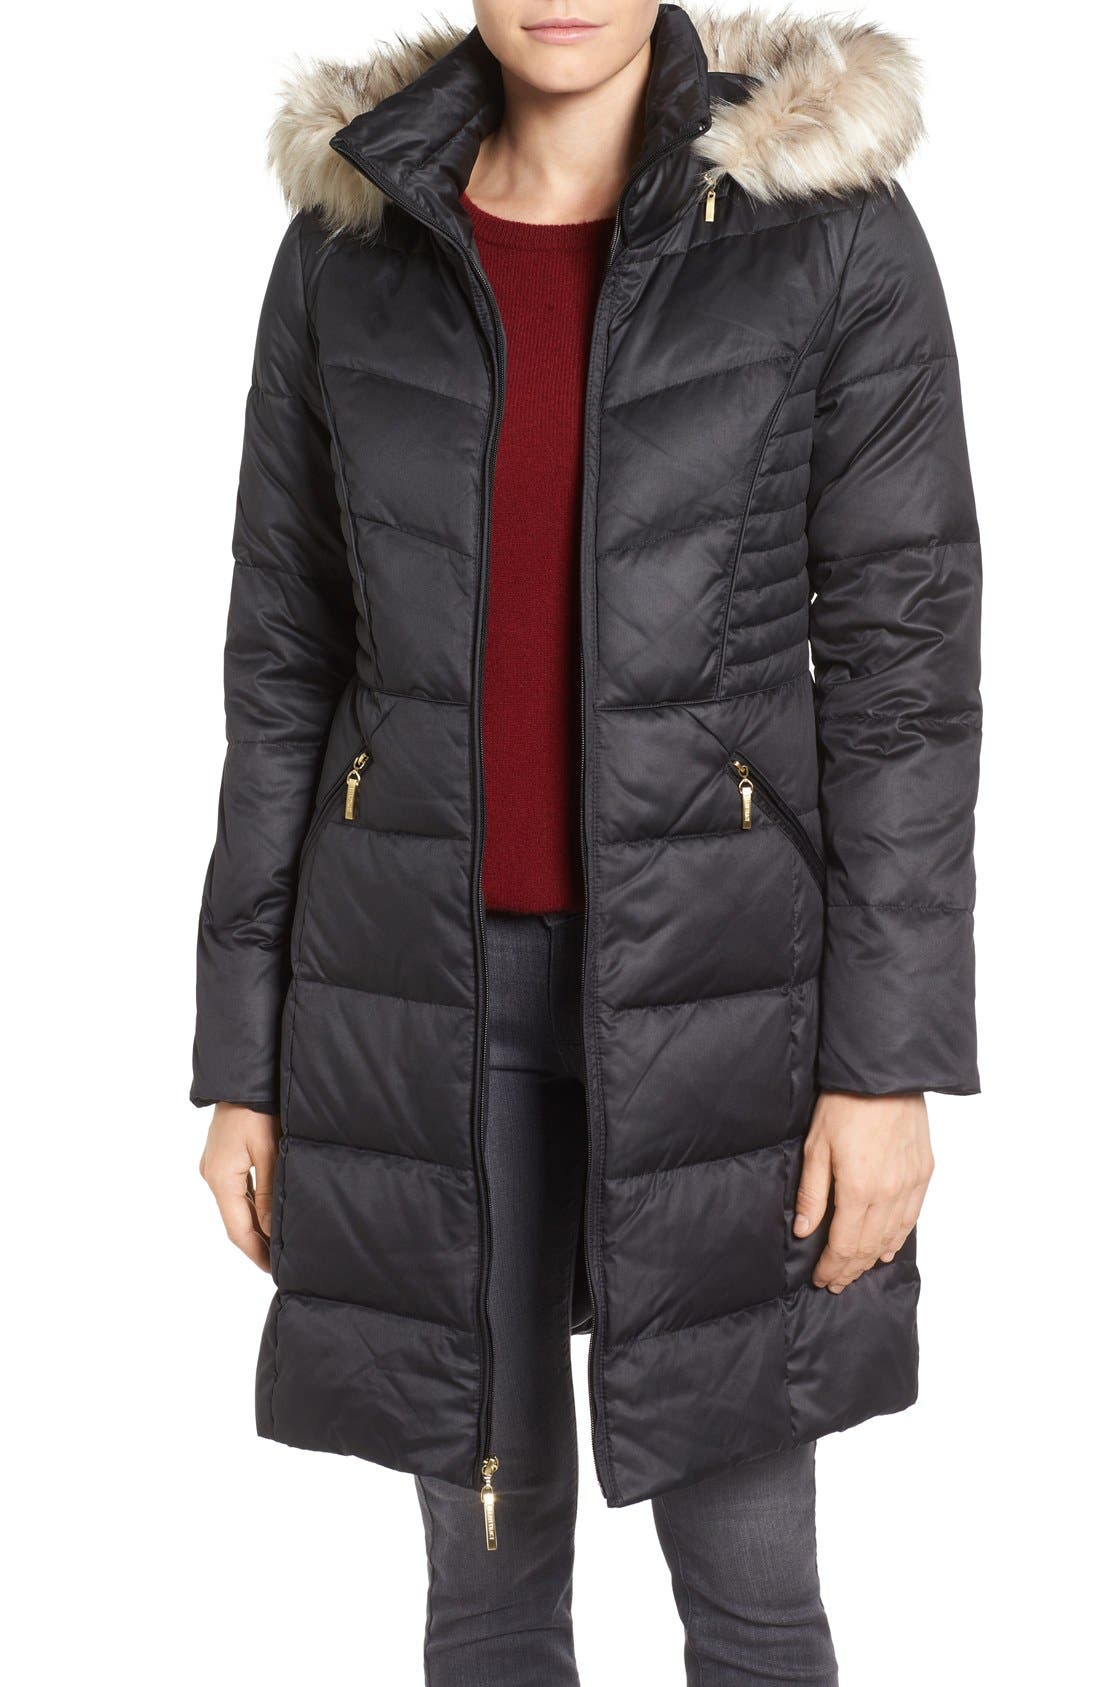 Ellen Tracy Faux Fur Trim Matte Satin Down Coat (Regular & Petite)